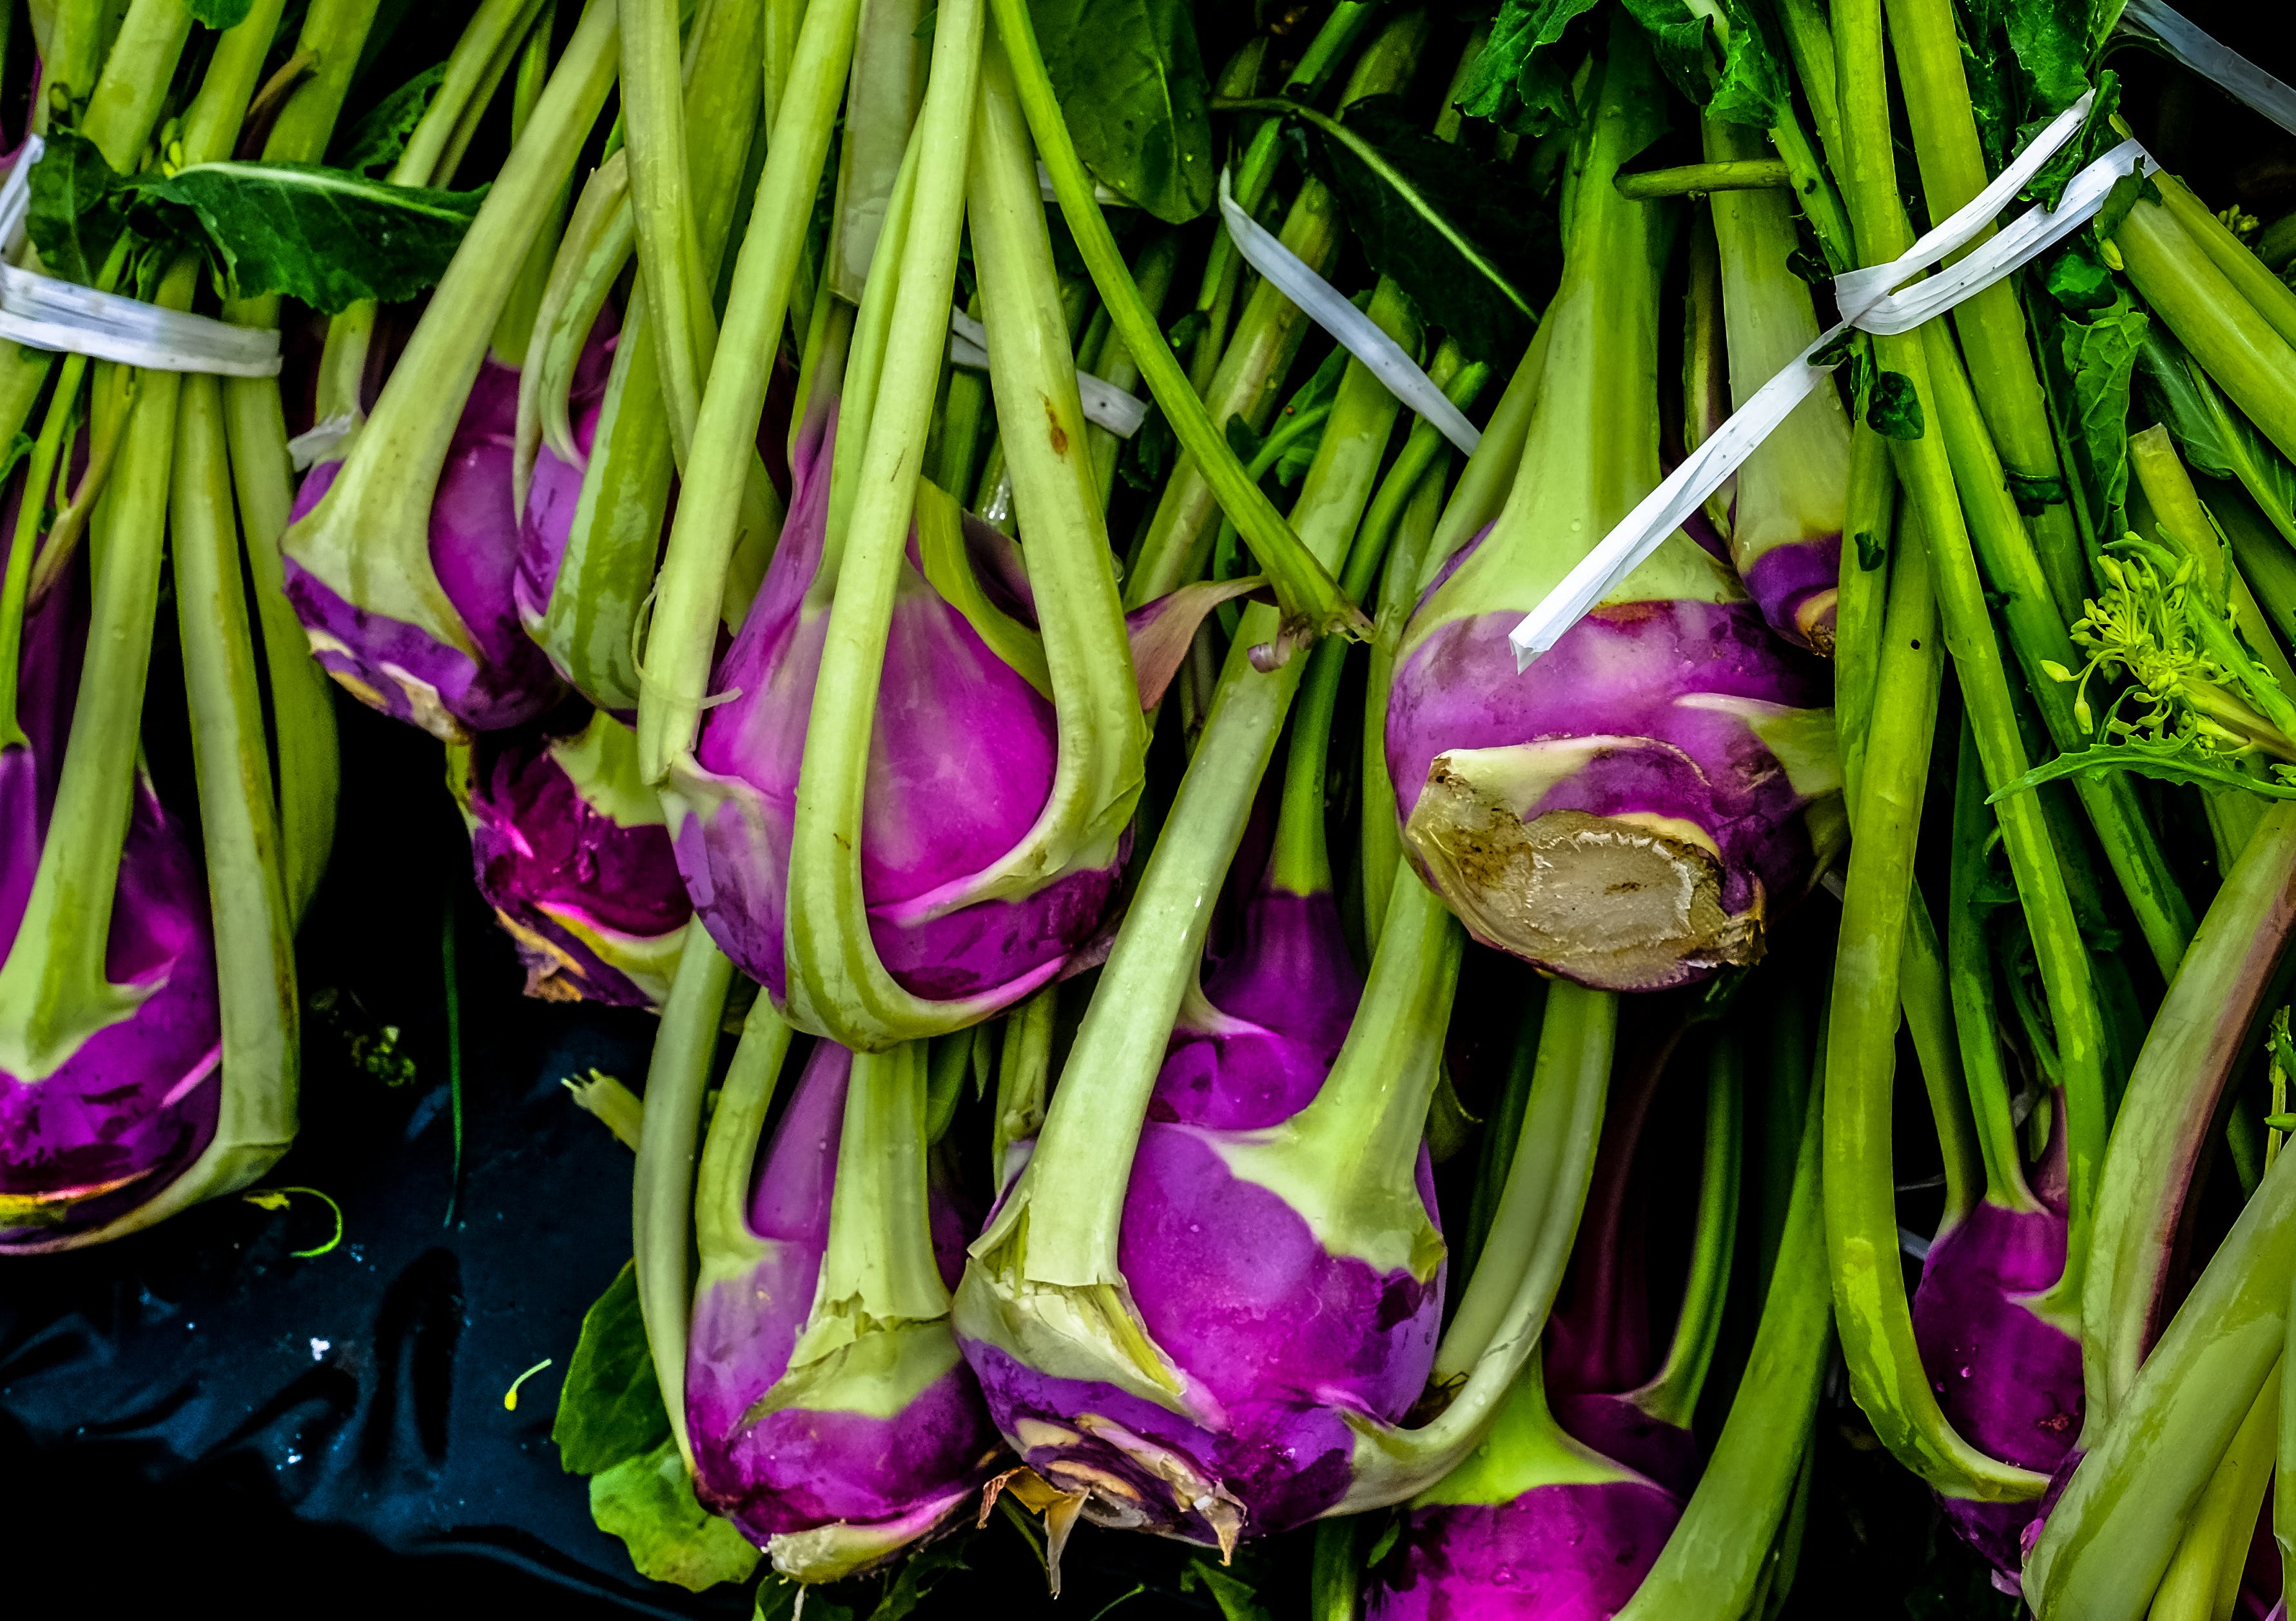 Free stock photo of food, vegetables, purple, leaves